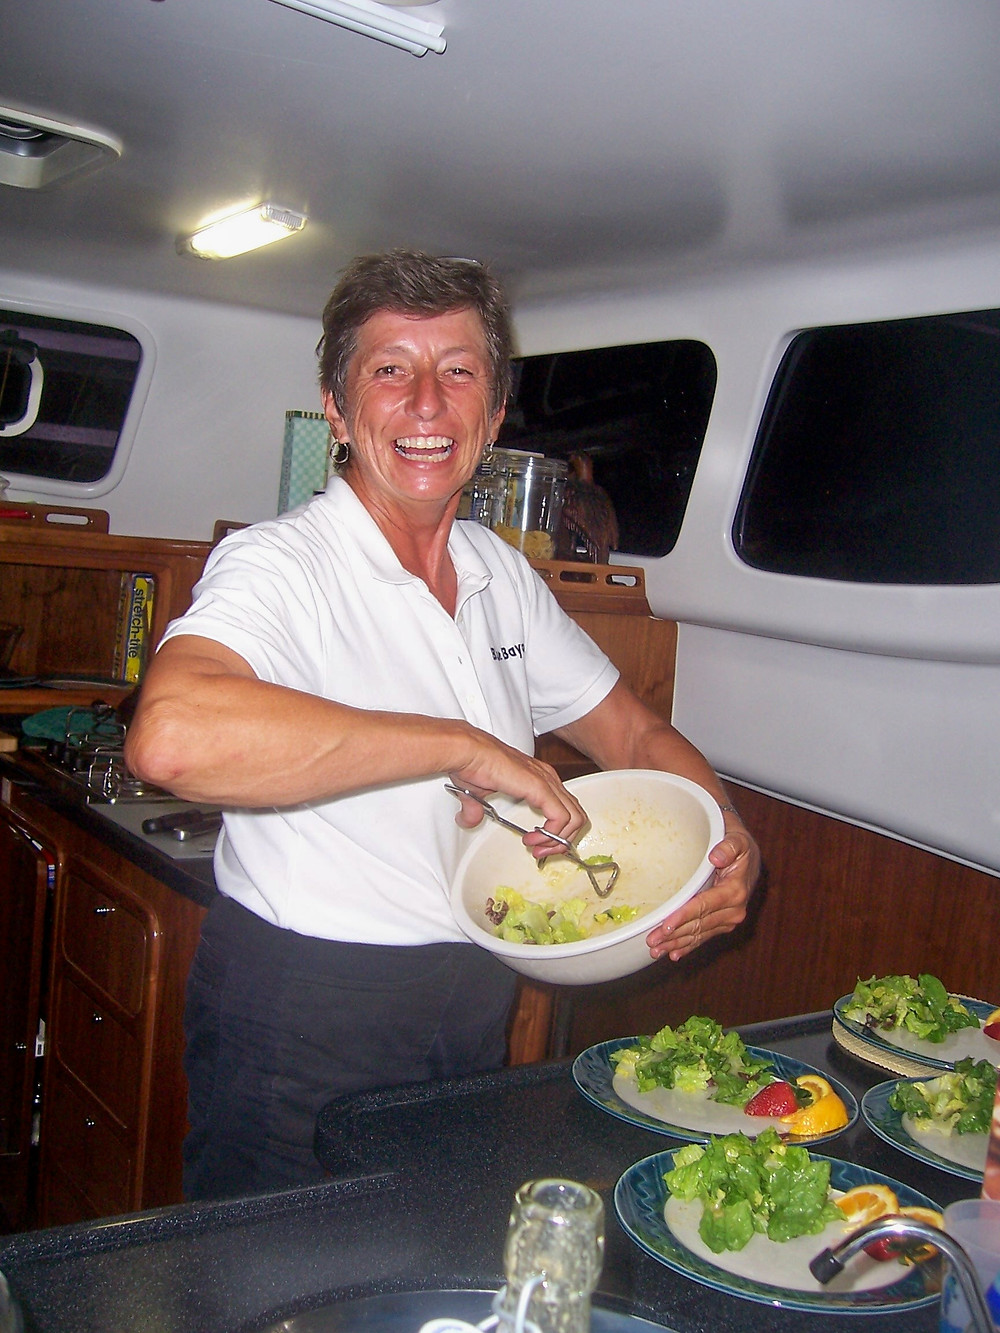 June, Wally's first mate and our fabulous cook